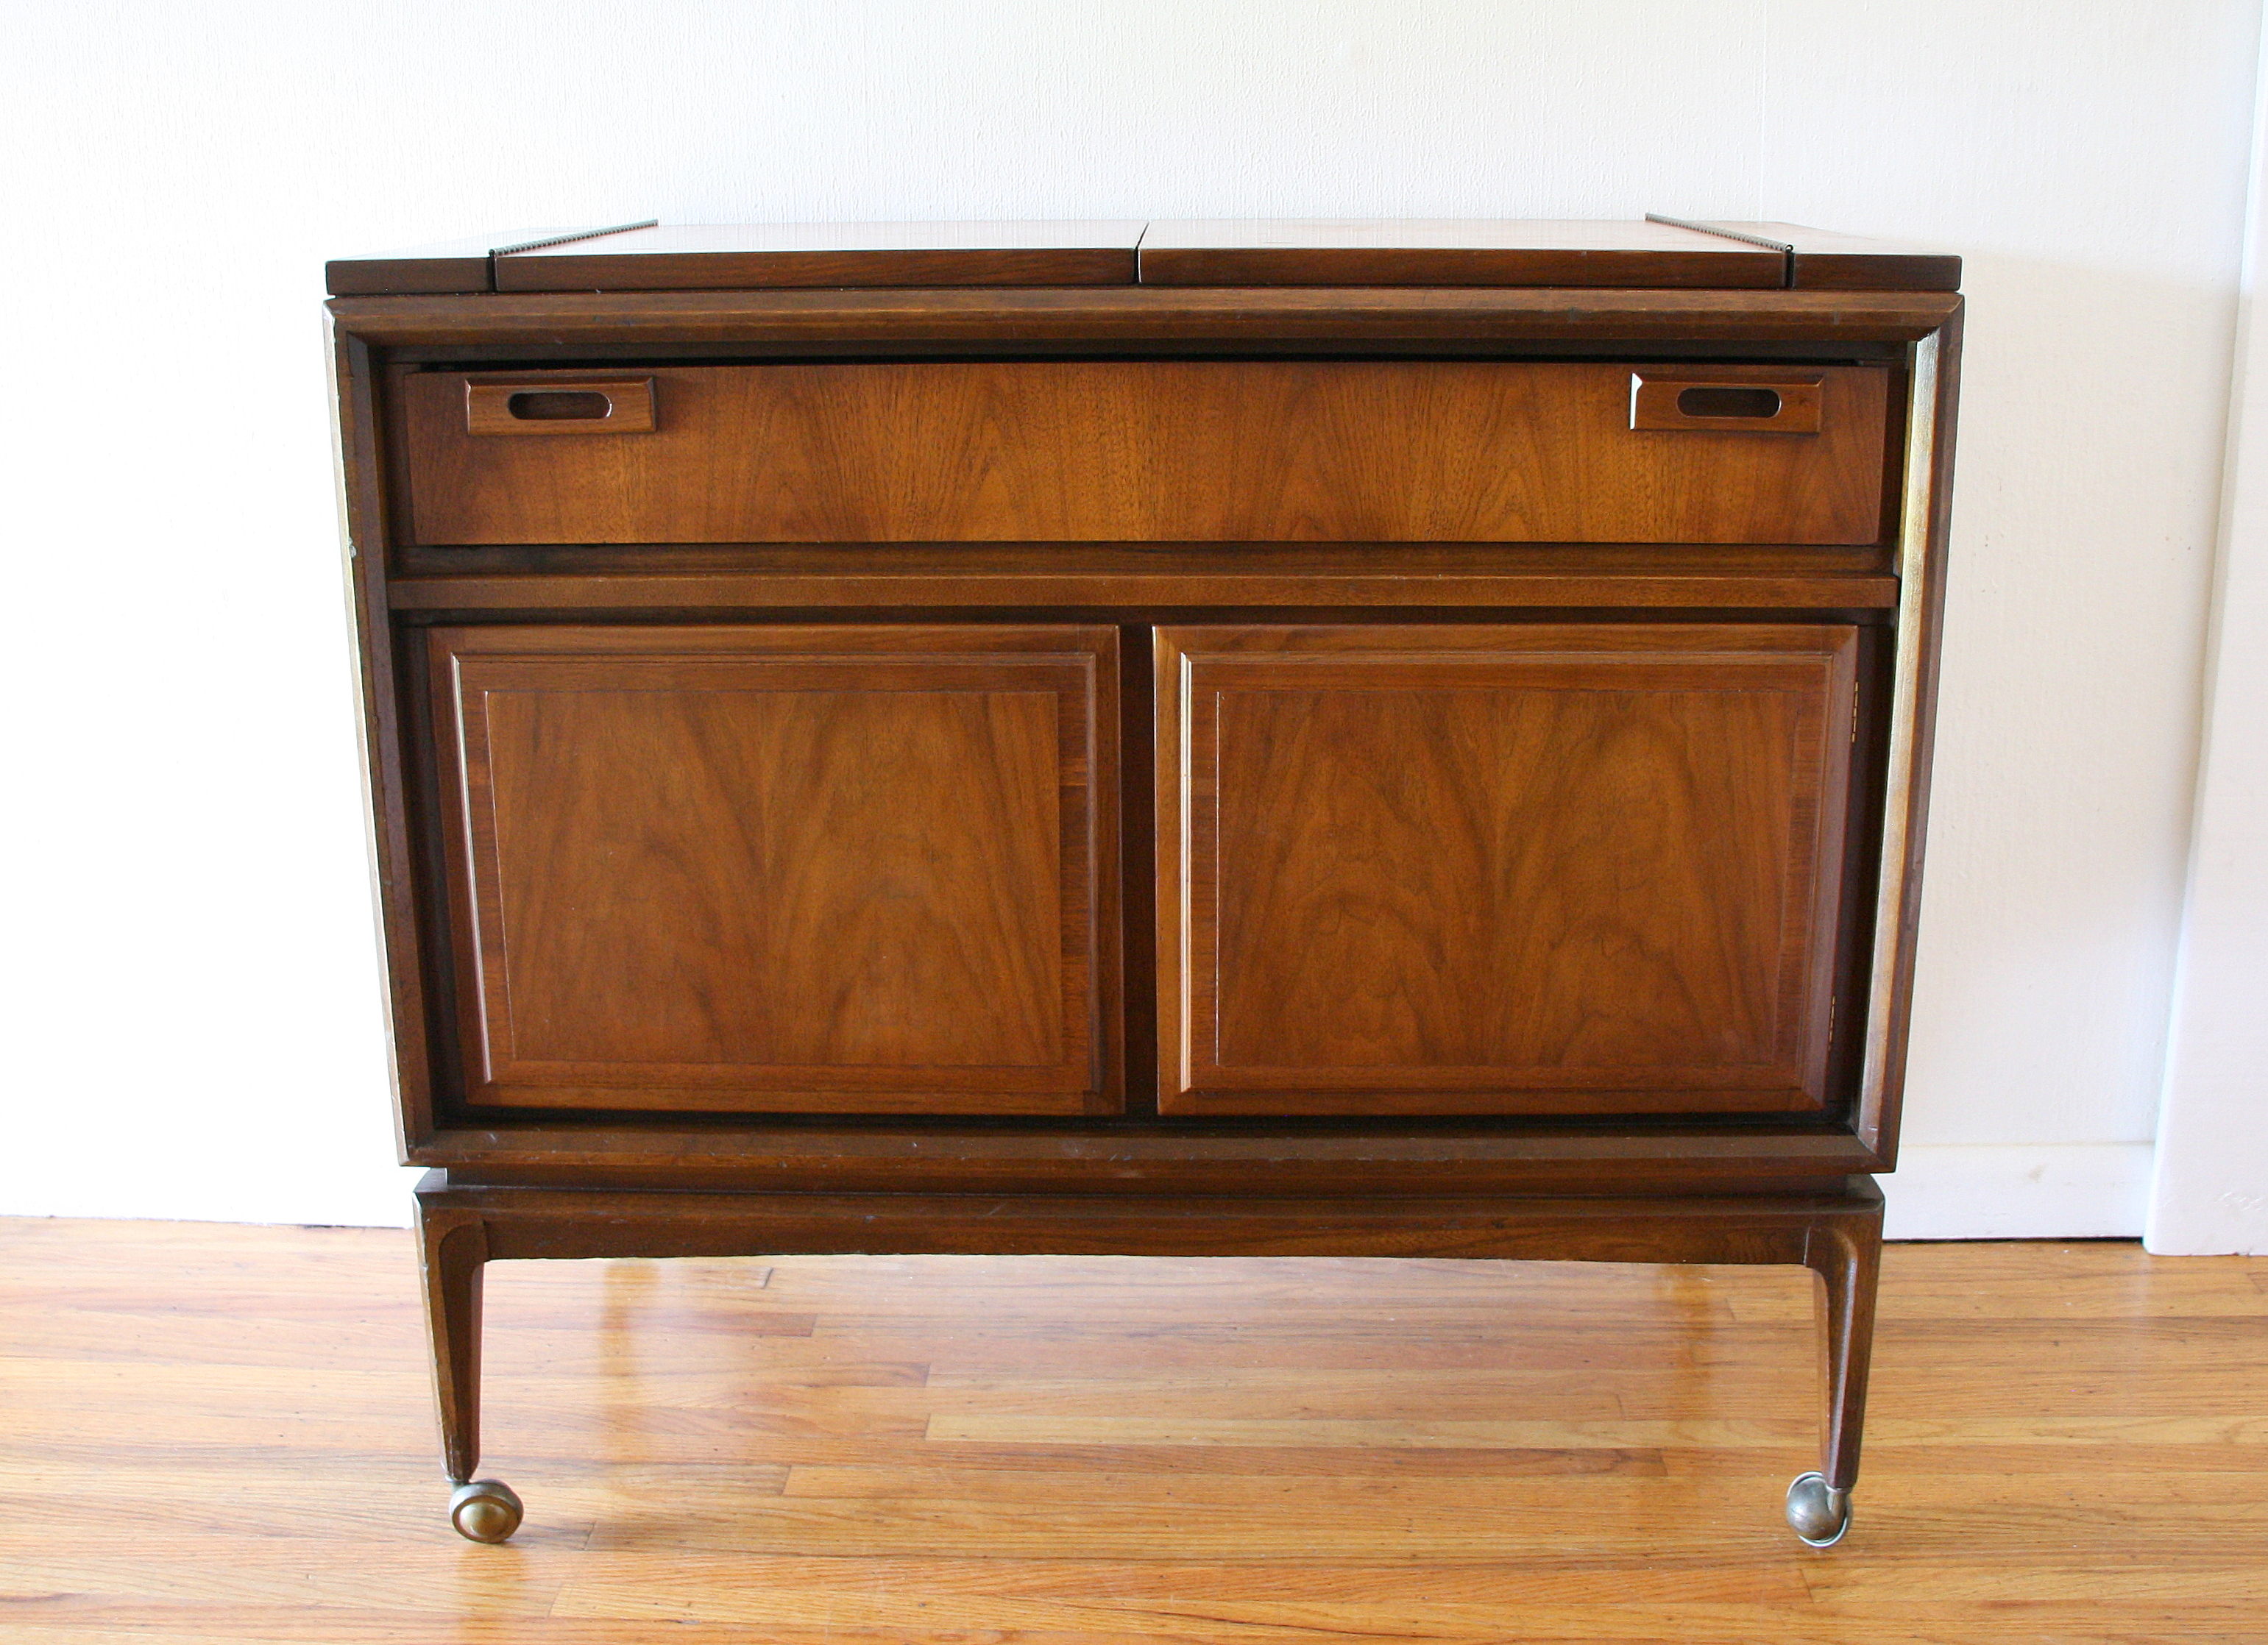 Mcm credenza with extension leaves 6